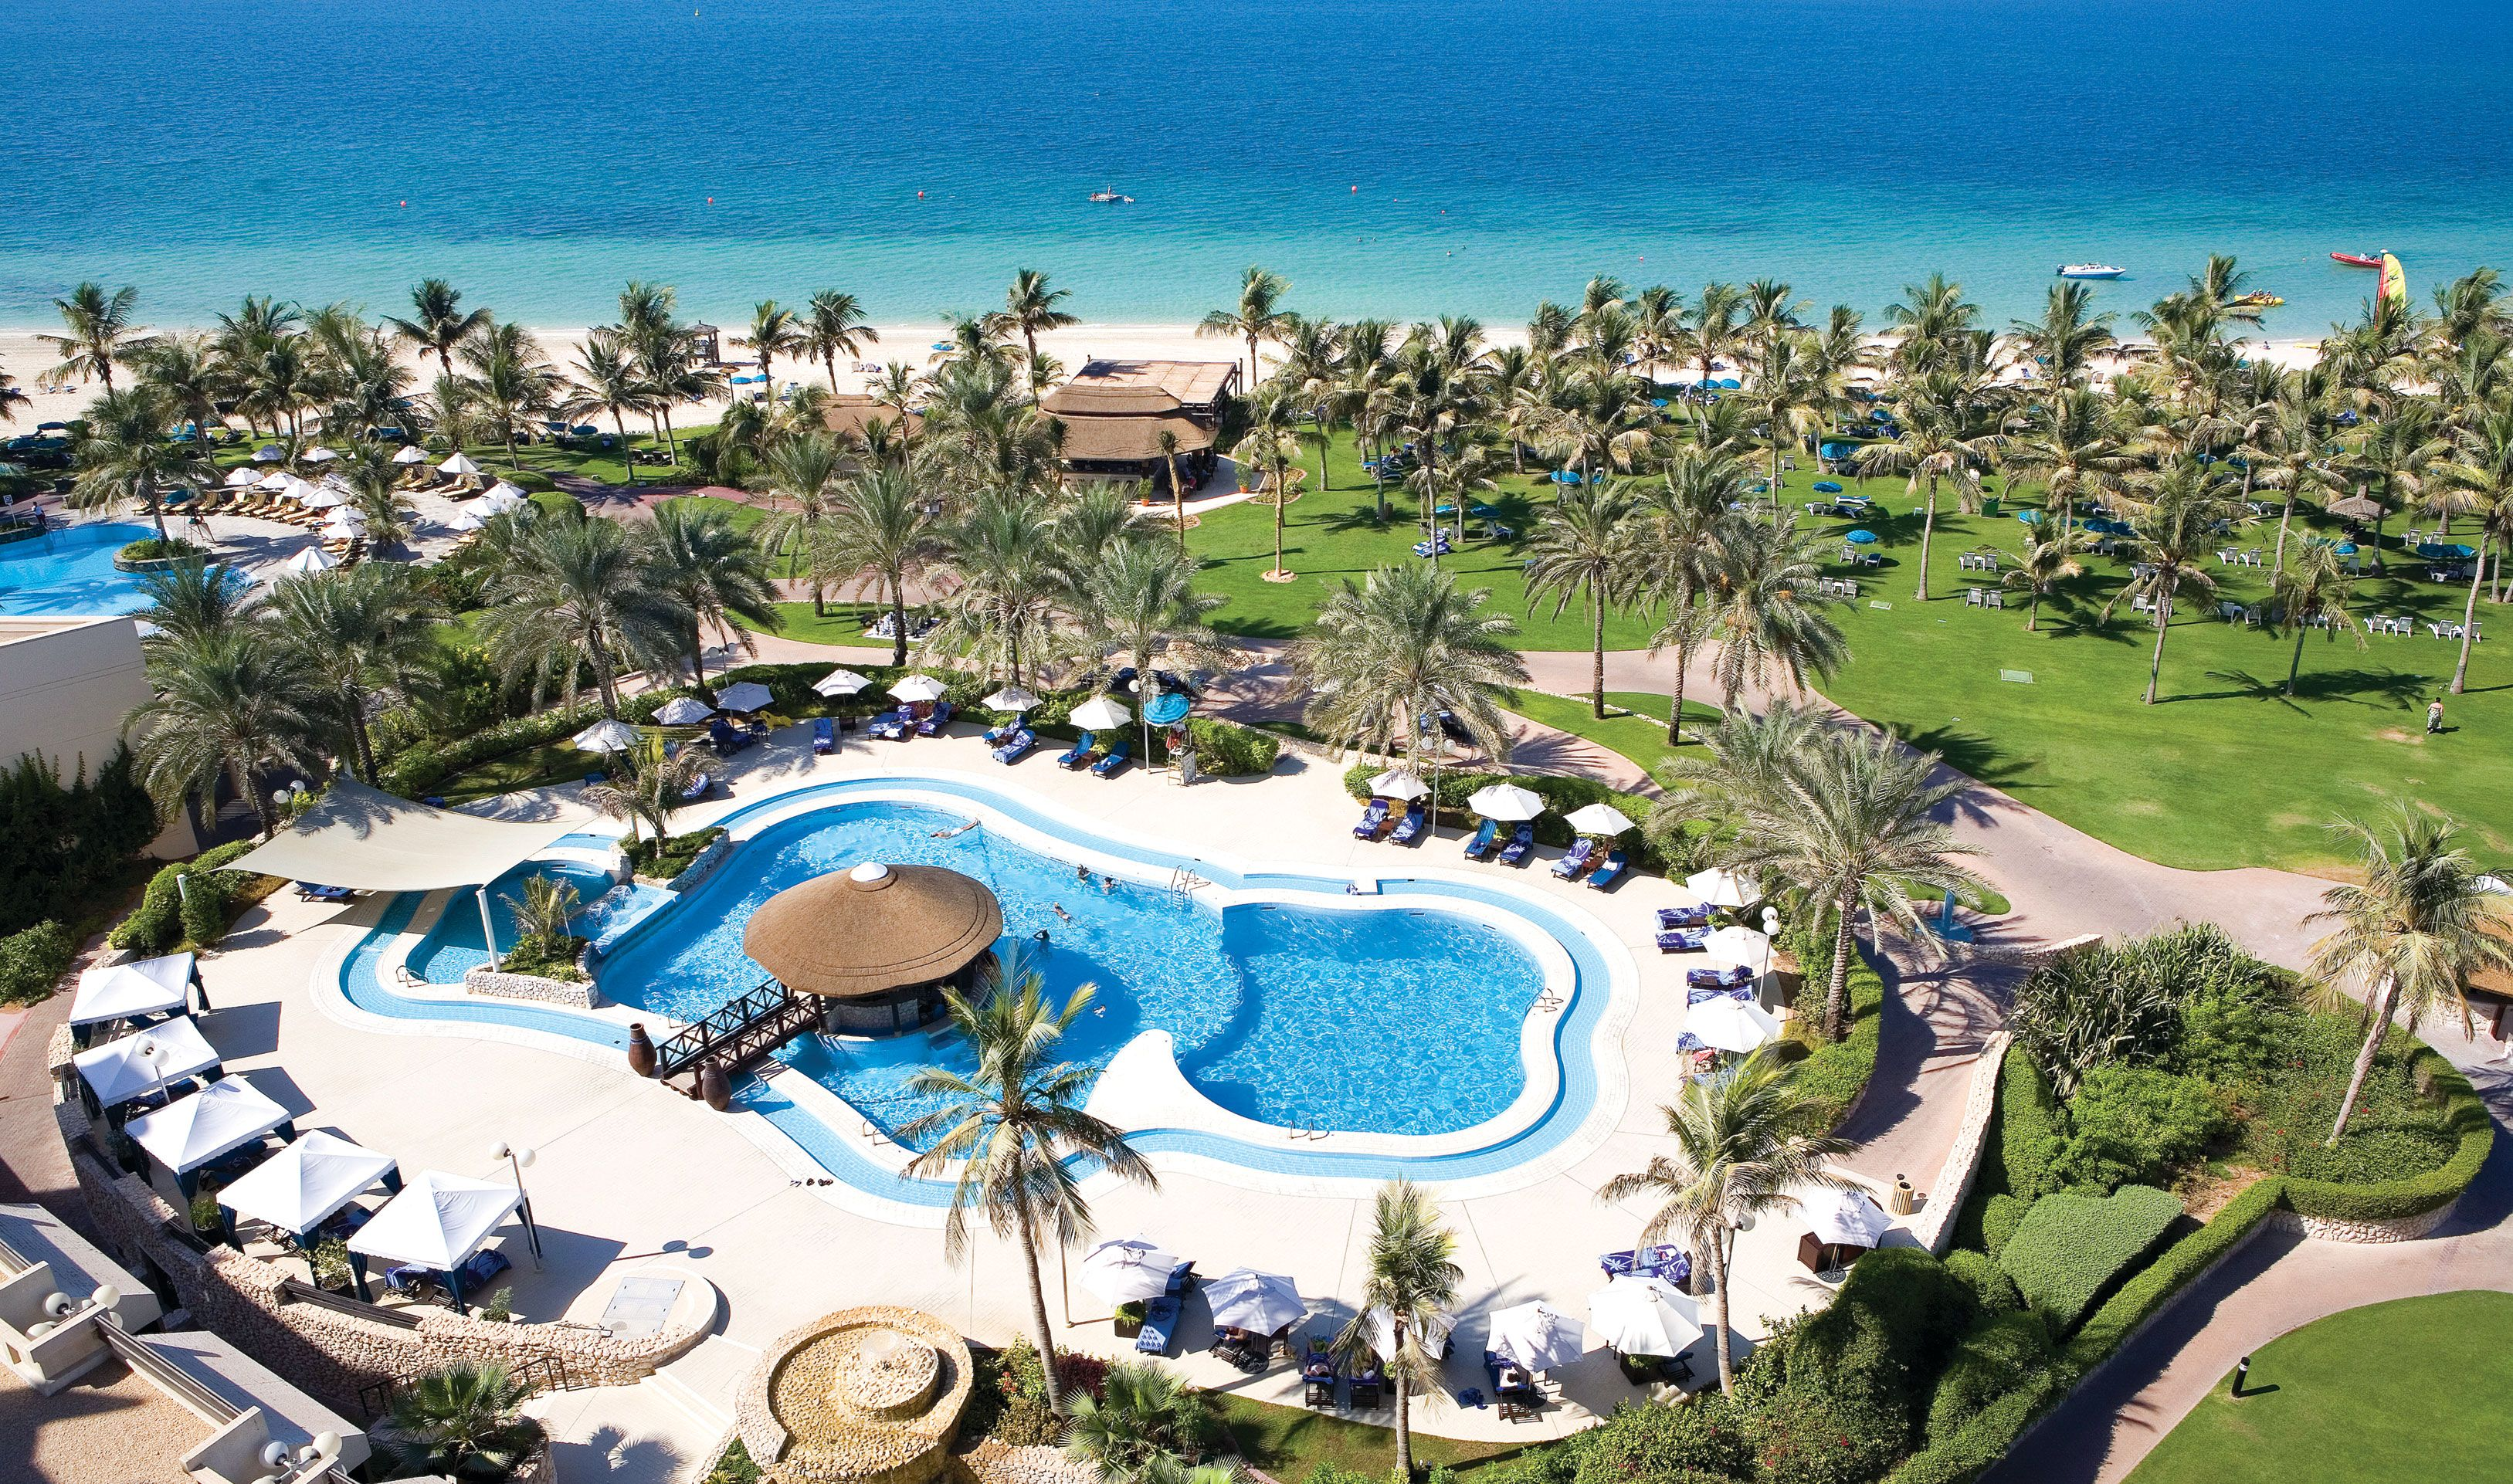 Ja Jebel Ali Beach Hotel Dubai Is Renowned For An Unpretentious And Relaxed Holiday Atmosphere